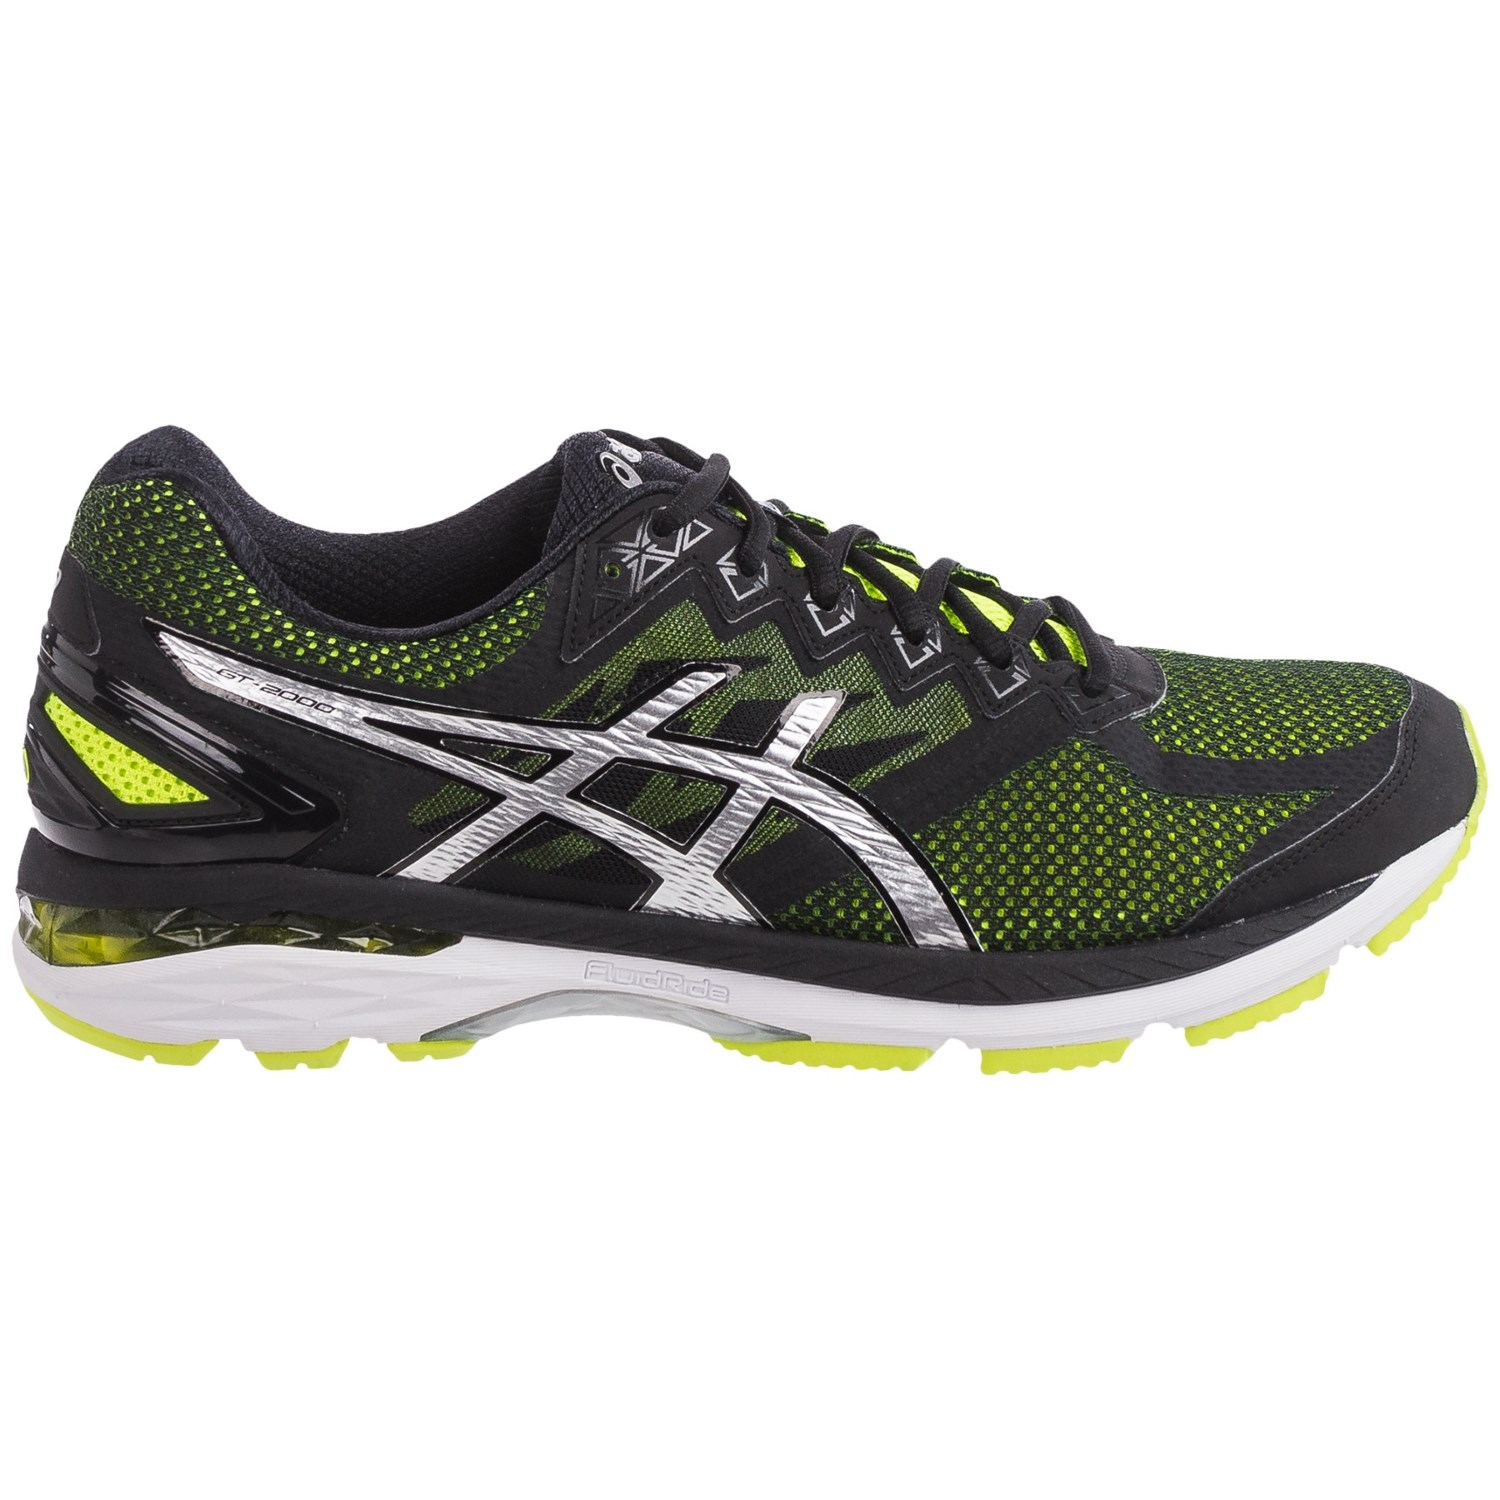 Asics Gt 2000 4 Running Shoes For Men Save 41